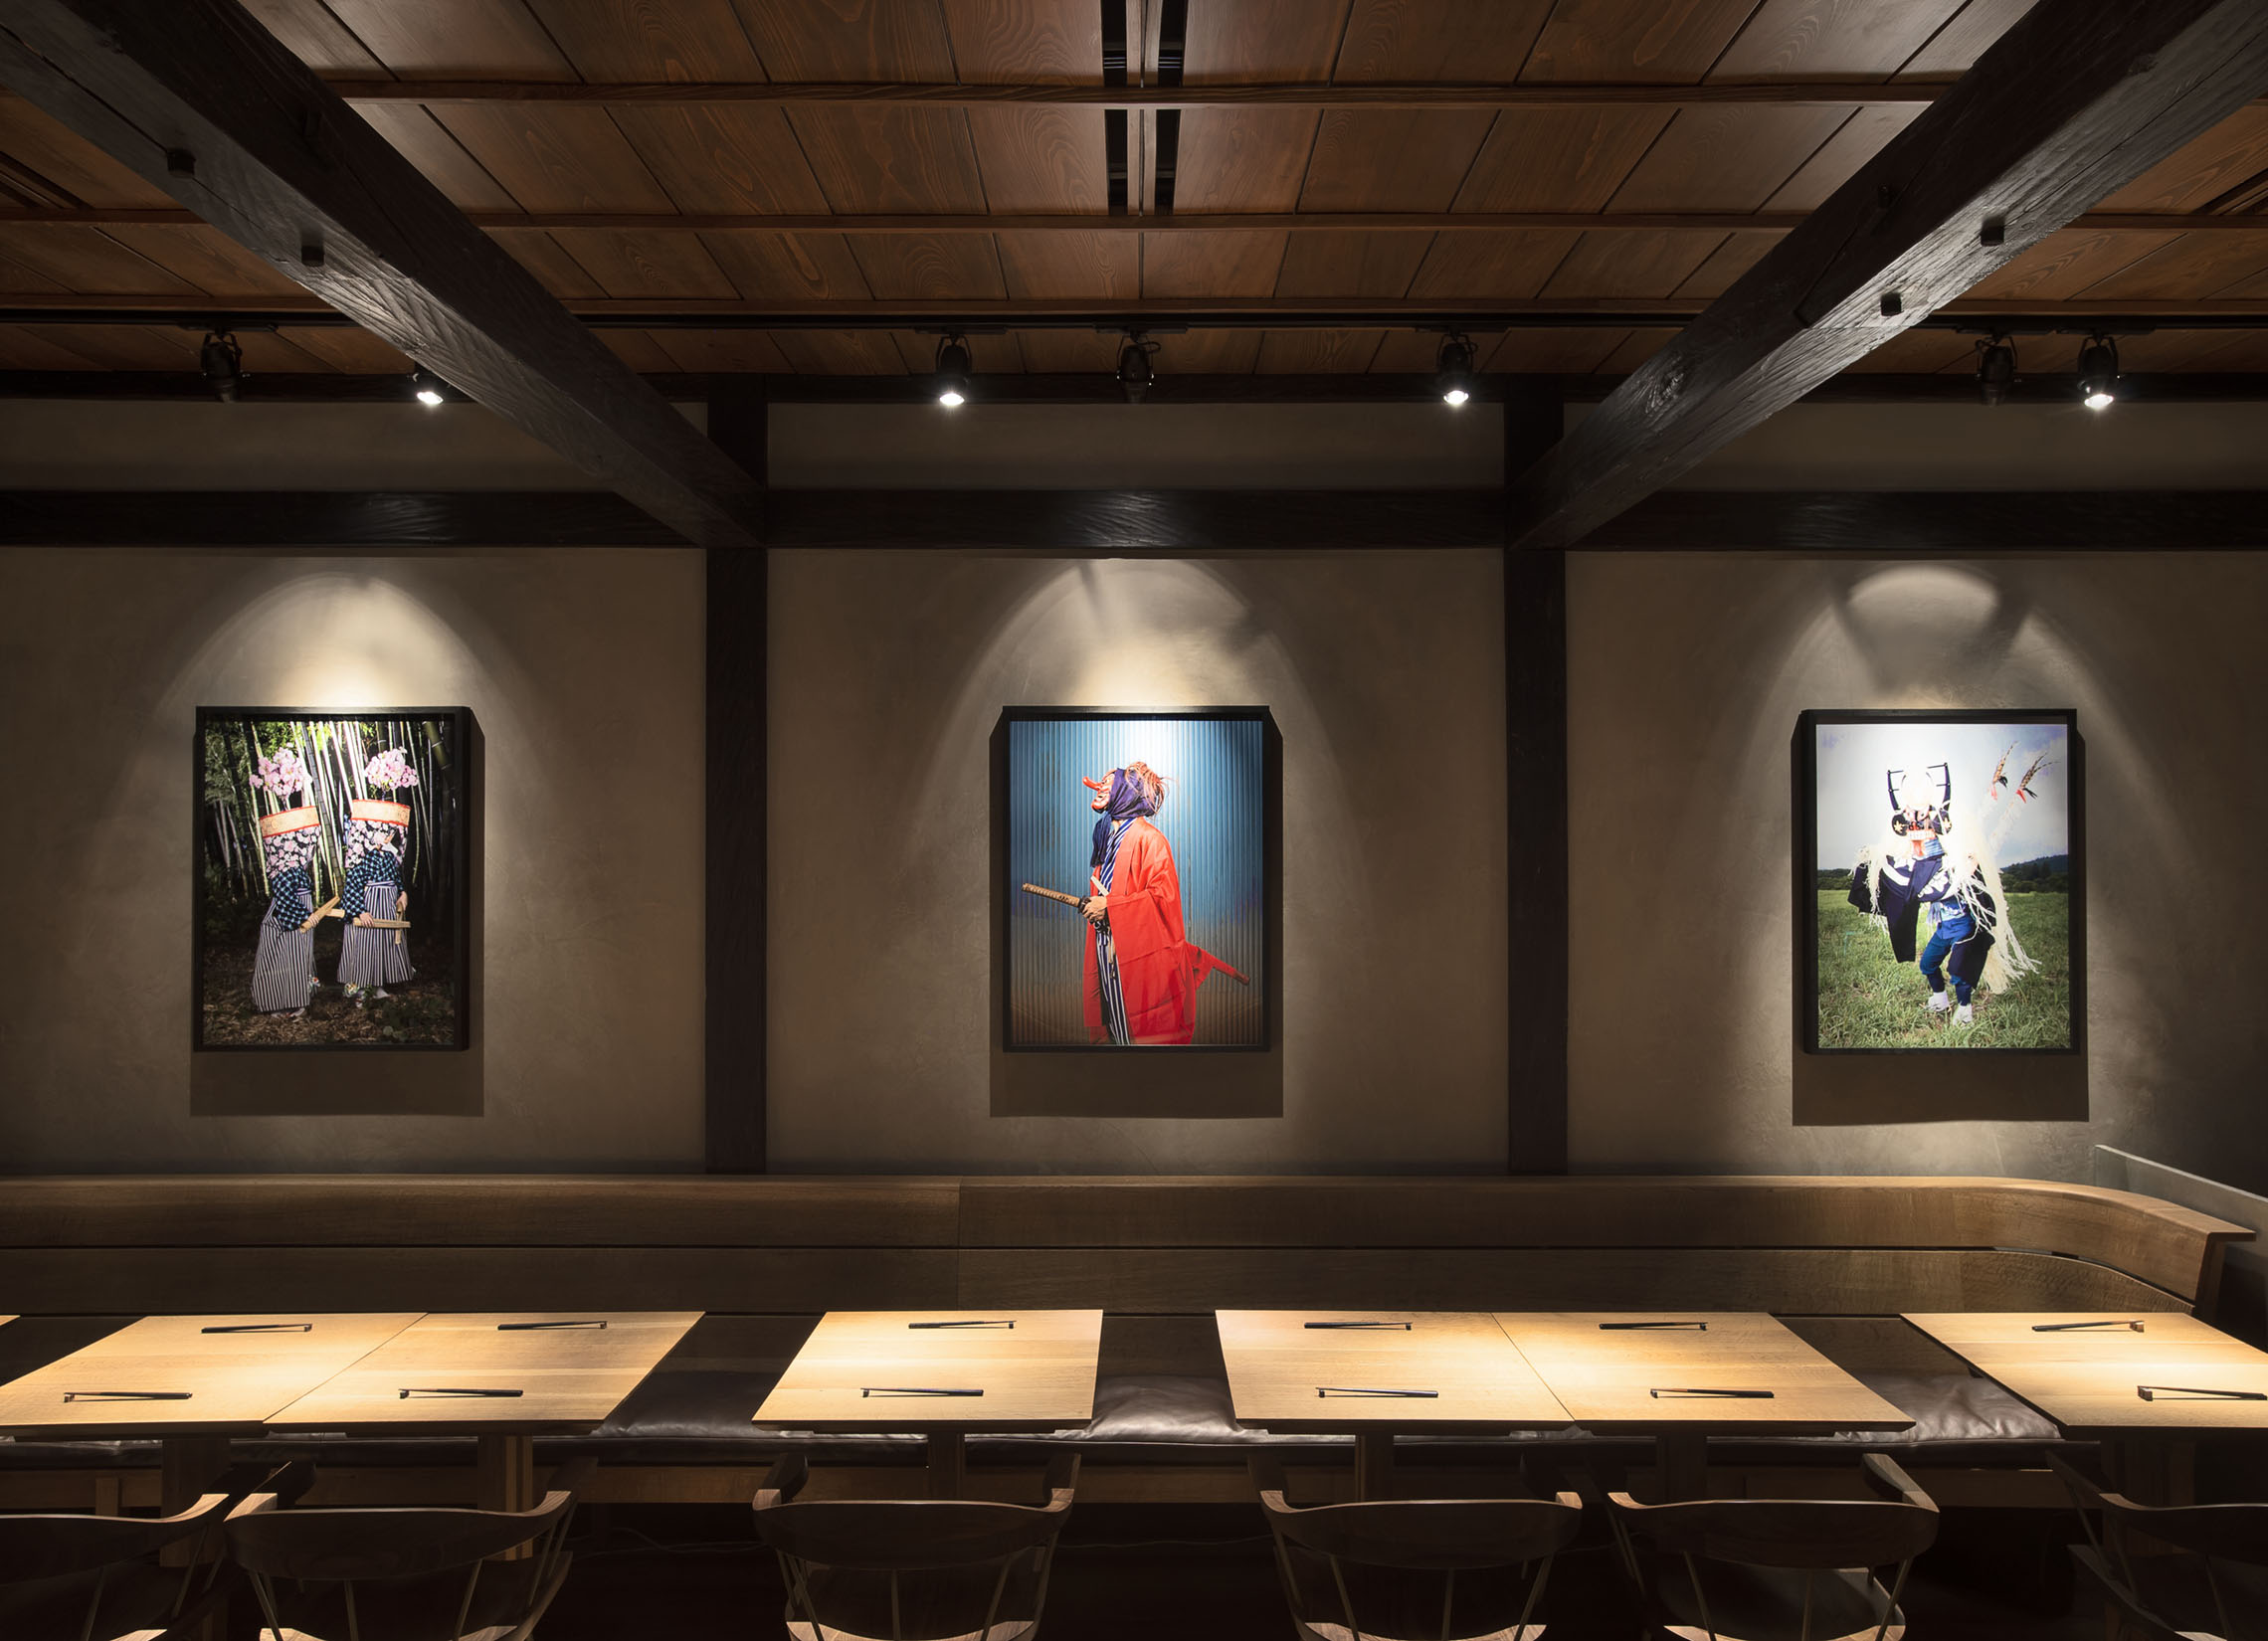 Hiroki is set to be a destination-worthy restaurant for the city.